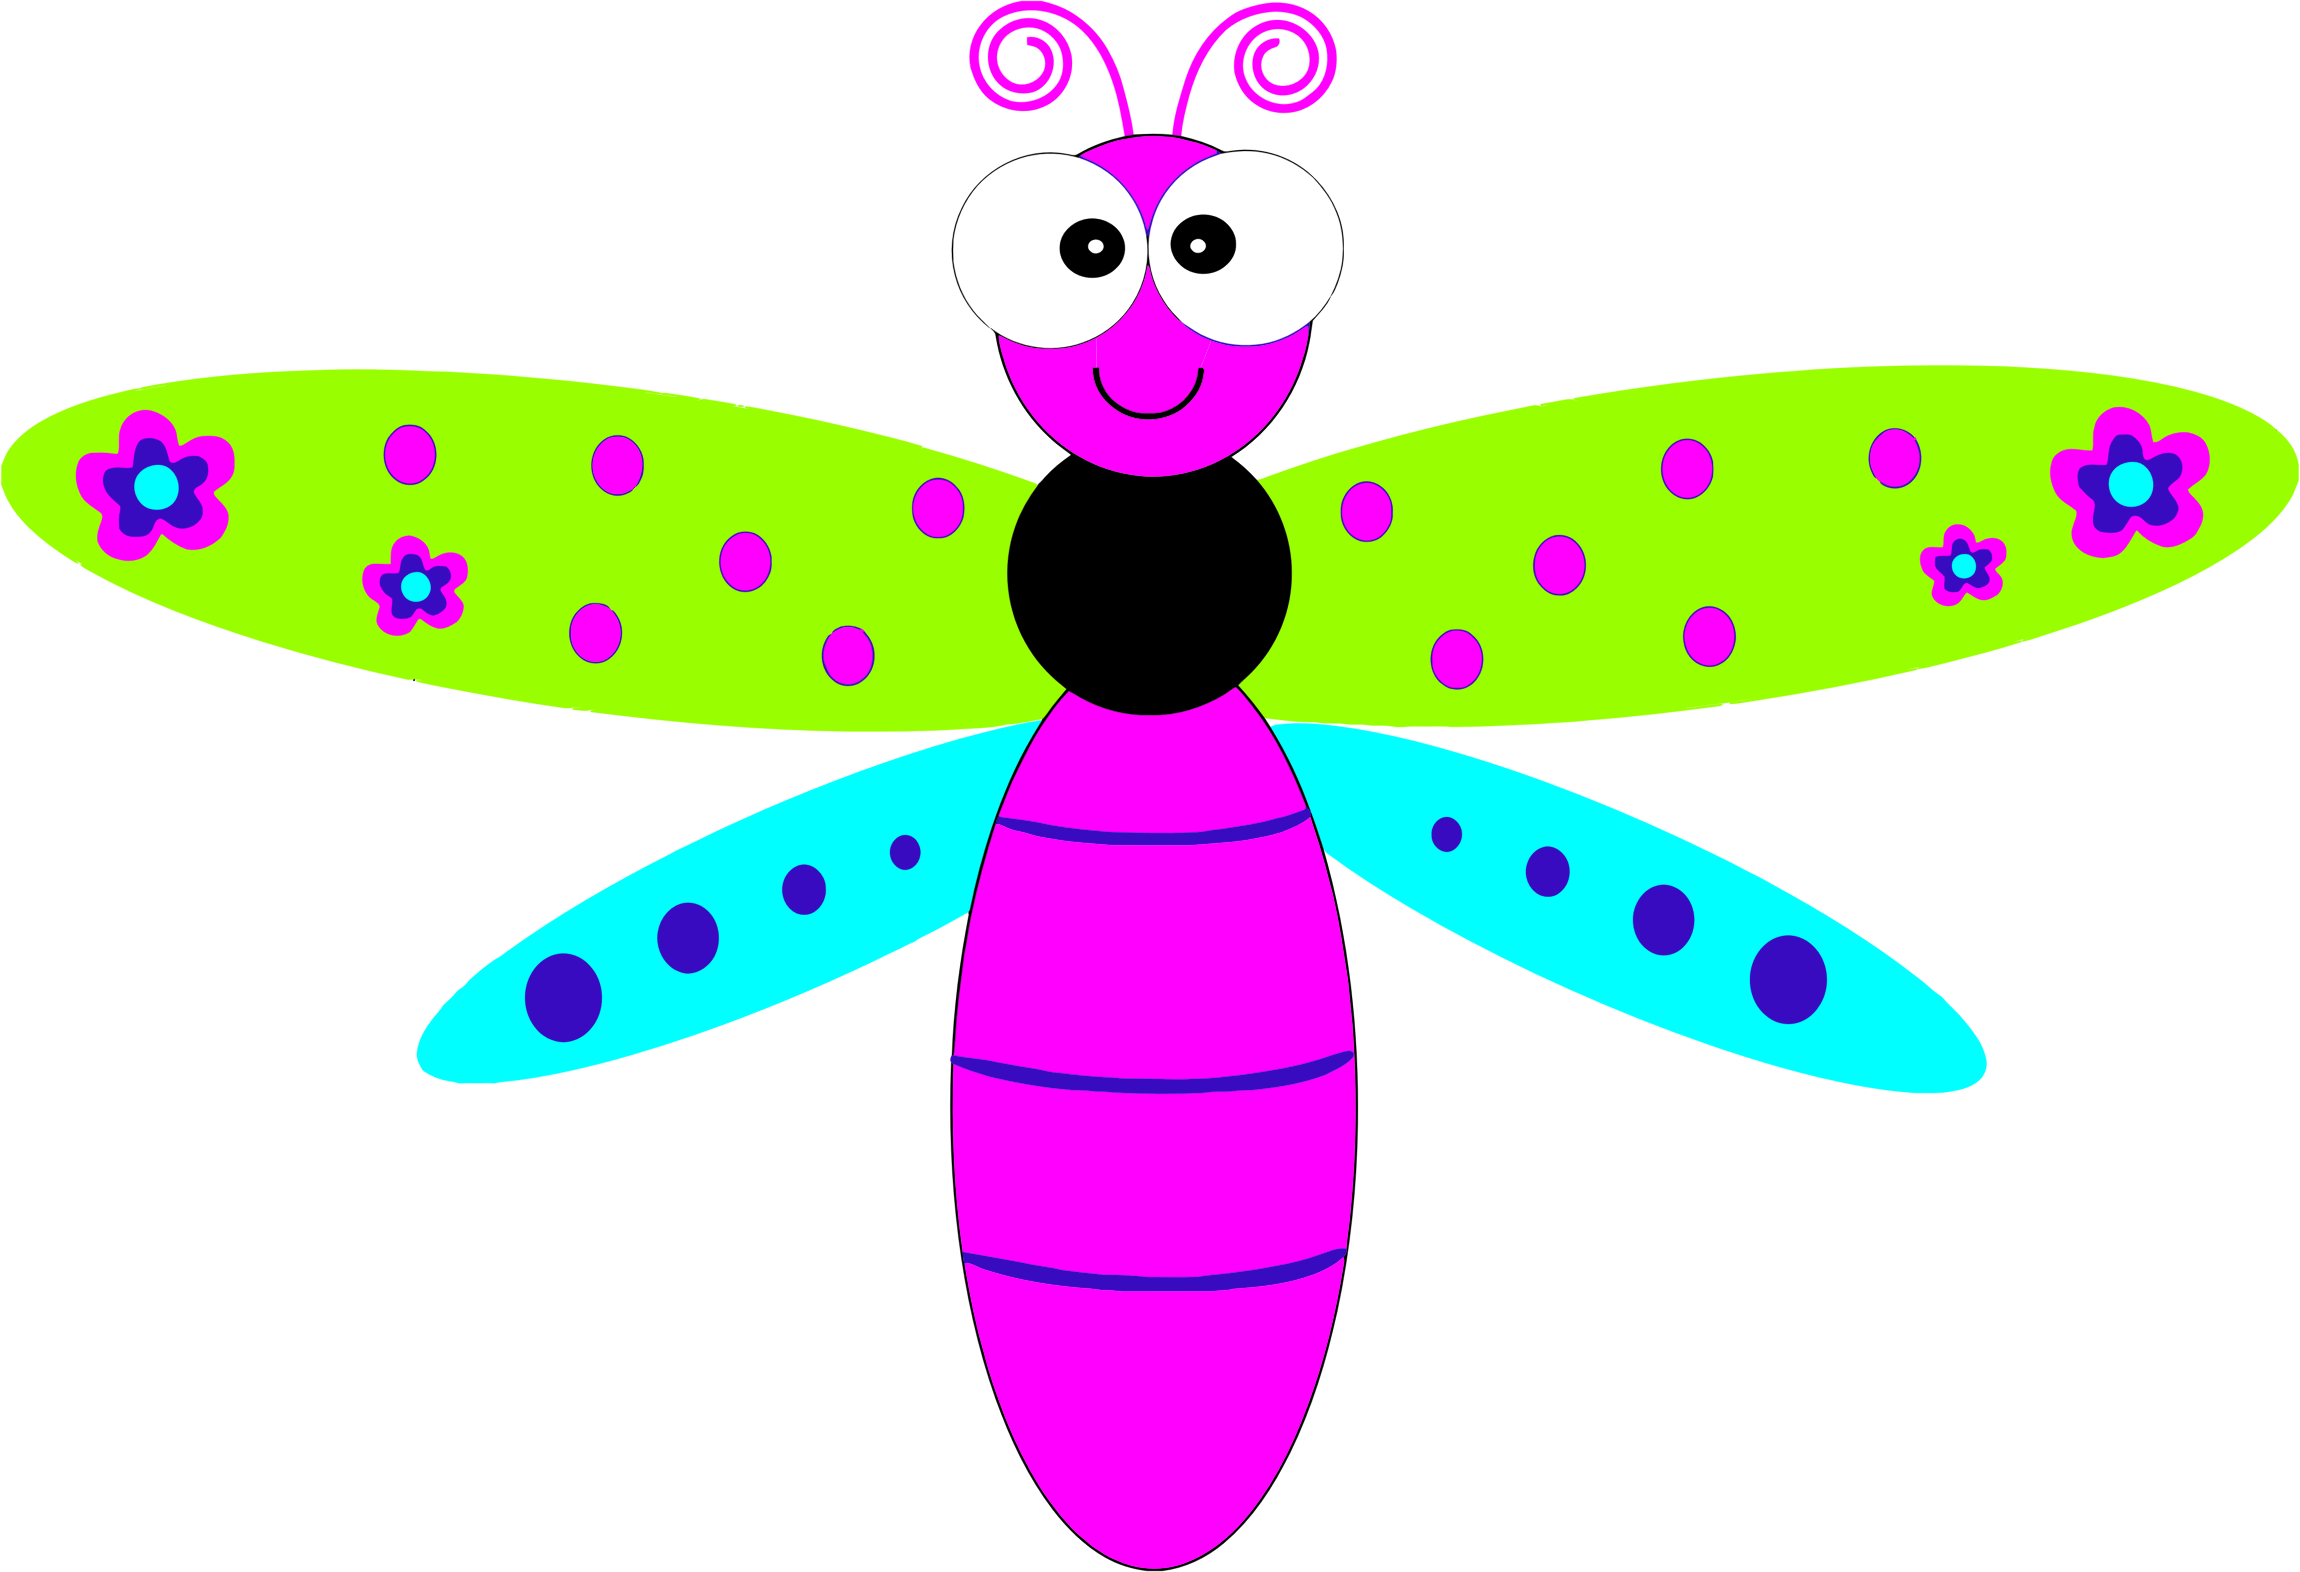 Dragonfly clipart insect. Friendly cartoon big image